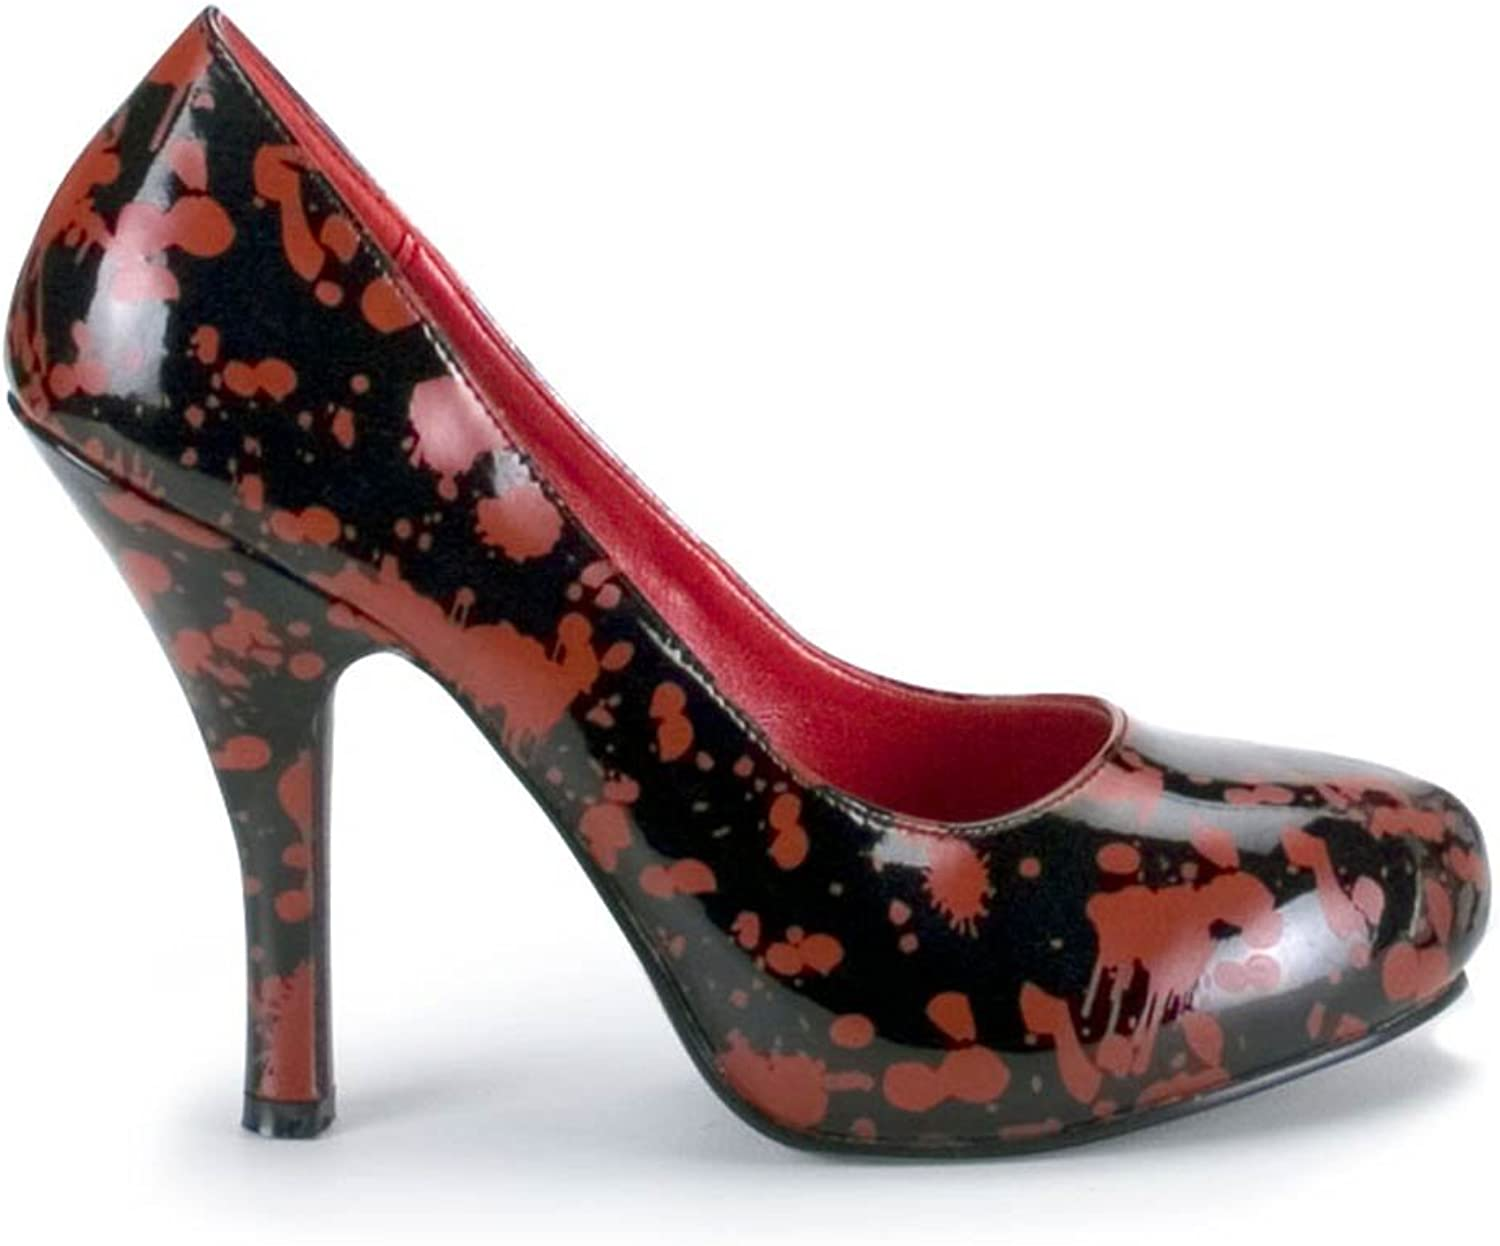 Pleaser Usa Inc Women's Blood Stain Black Pump shoes Black Red Size 10